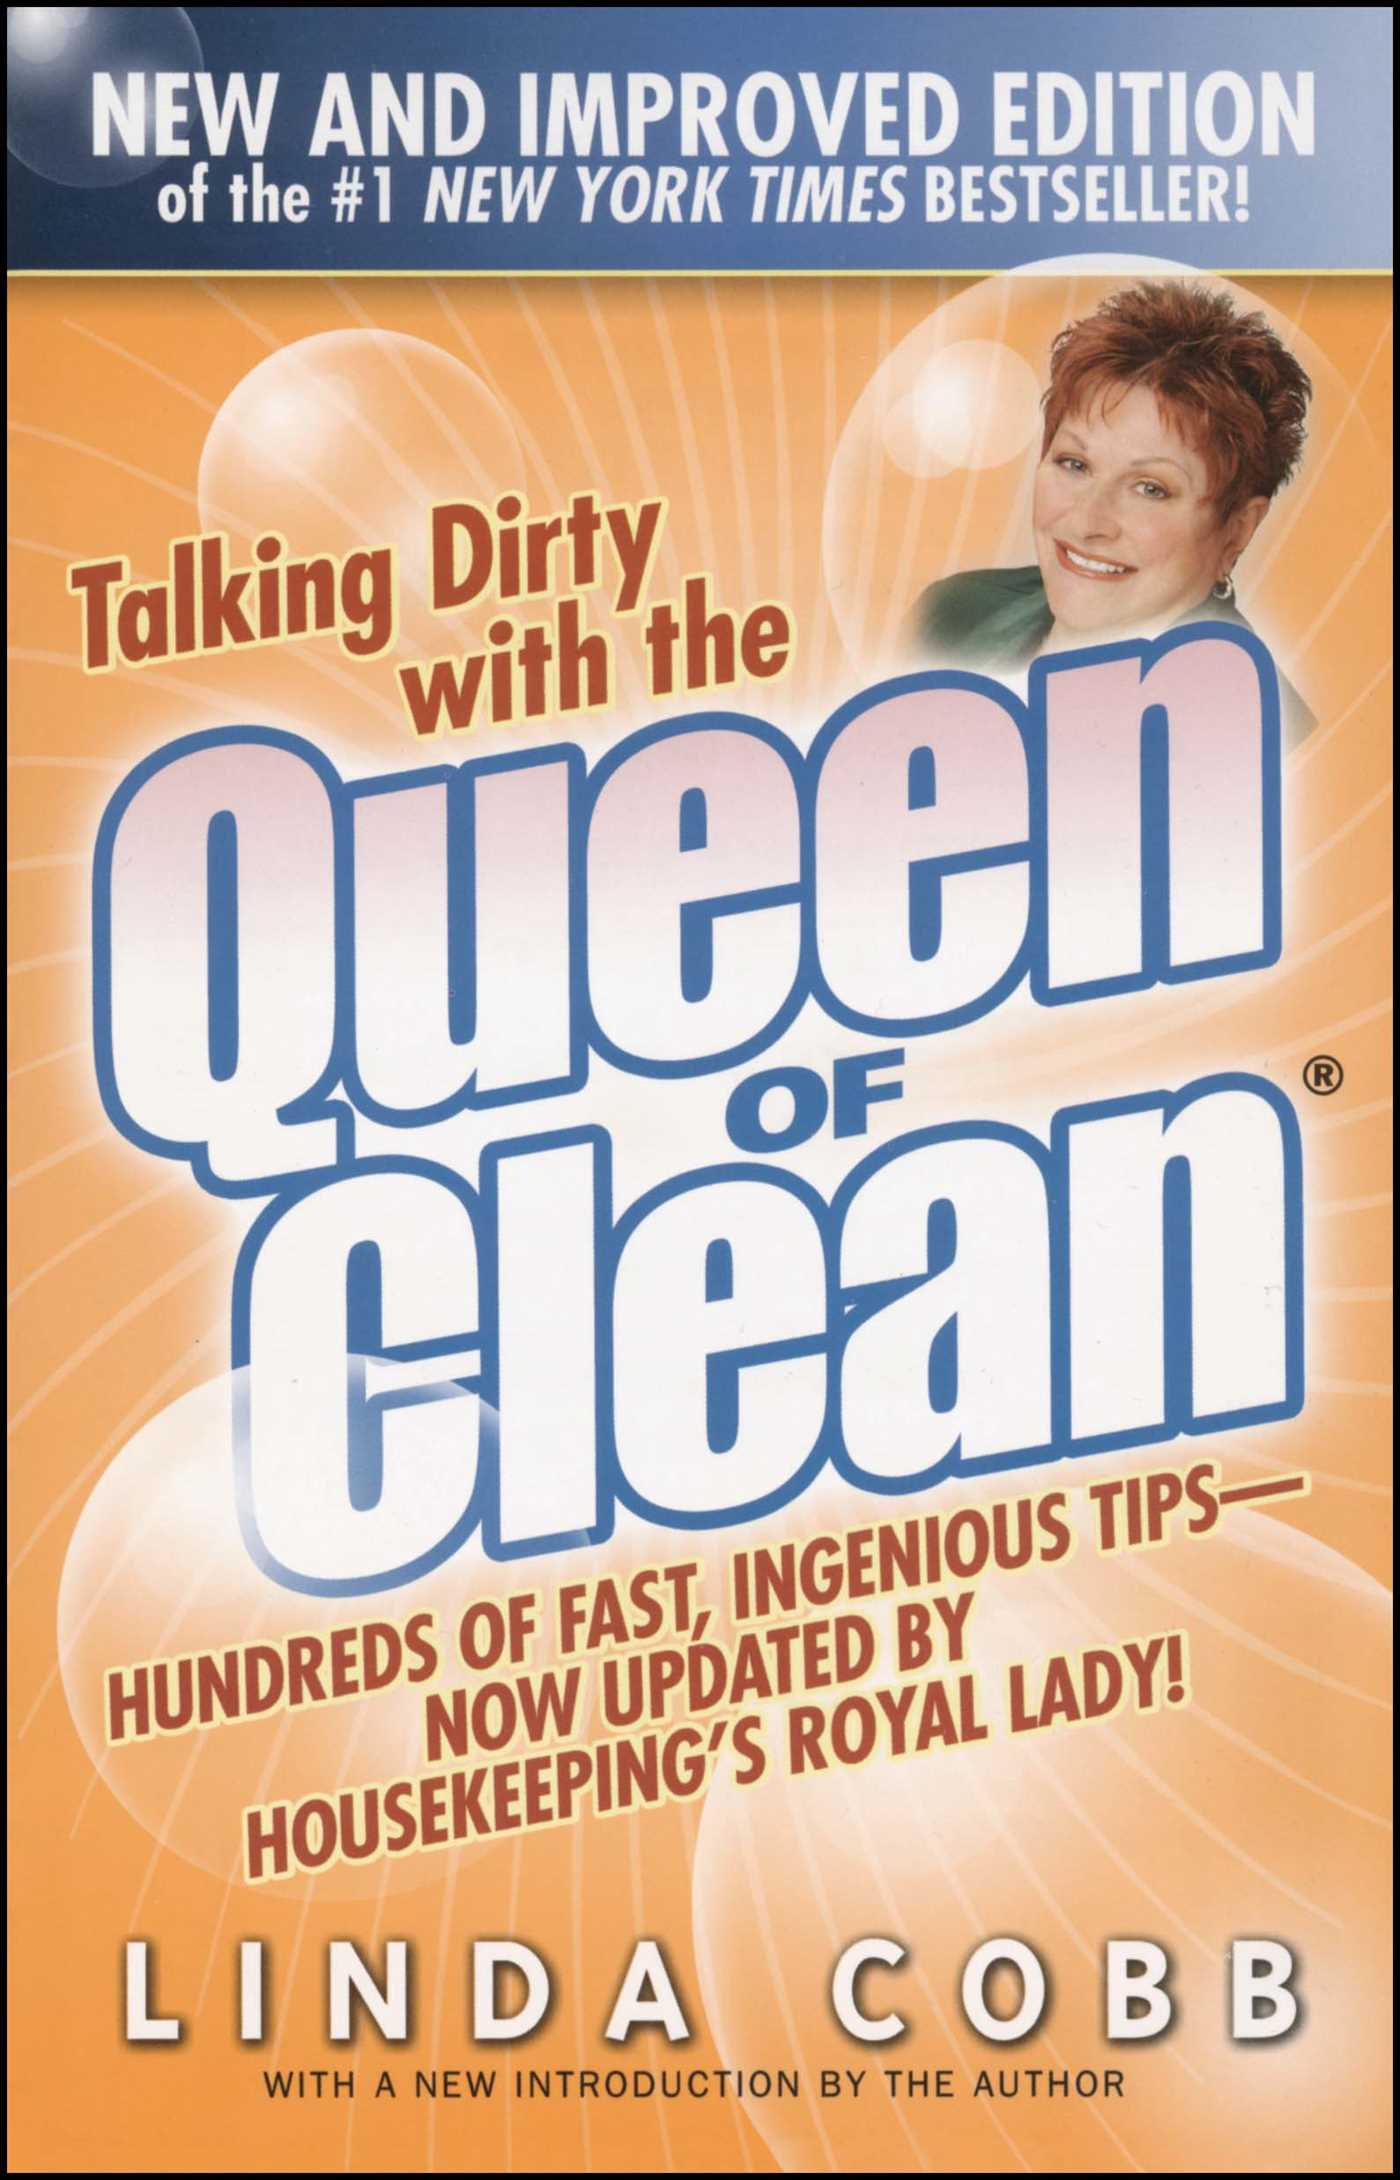 Talking-dirty-with-the-queen-of-clean-9780743418317_hr